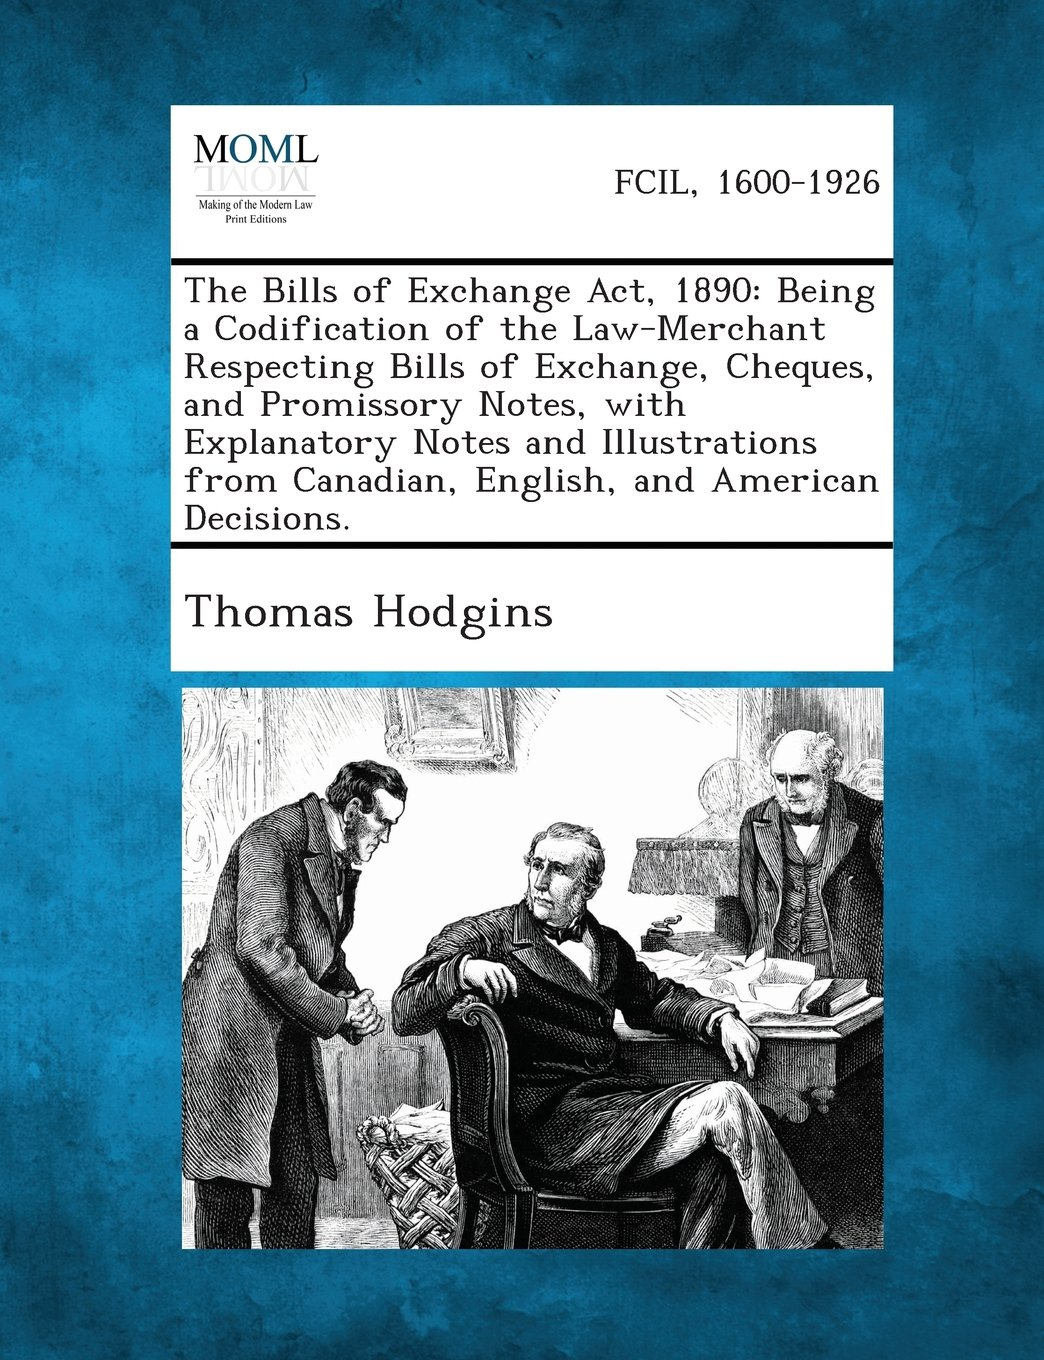 Download The Bills of Exchange ACT, 1890: Being a Codification of the Law-Merchant Respecting Bills of Exchange, Cheques, and Promissory Notes, with Explanator PDF